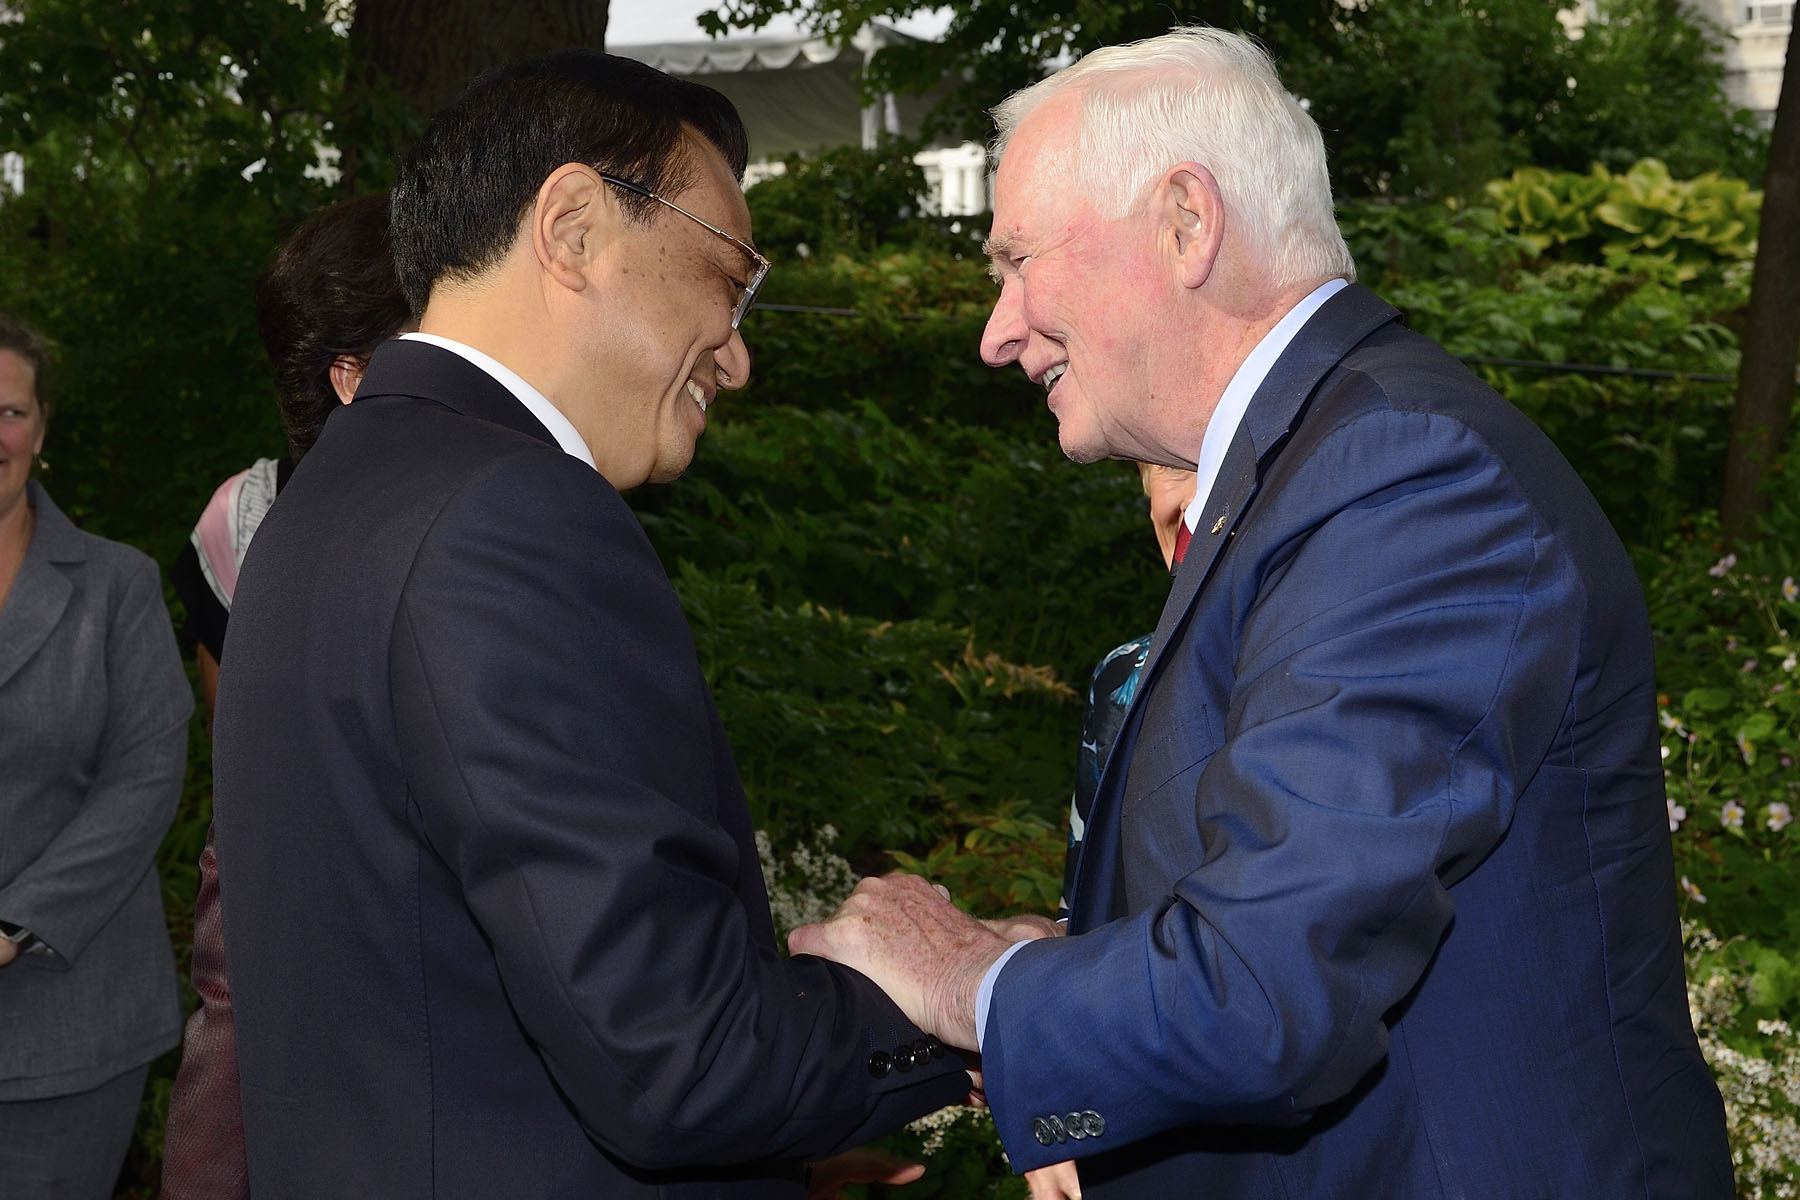 His Excellency the Right Honourable David Johnston, Governor General of Canada, met with His Excellency Li Keqiang, Premier of the State Council of the People's Republic of China, on September 22, 2016.